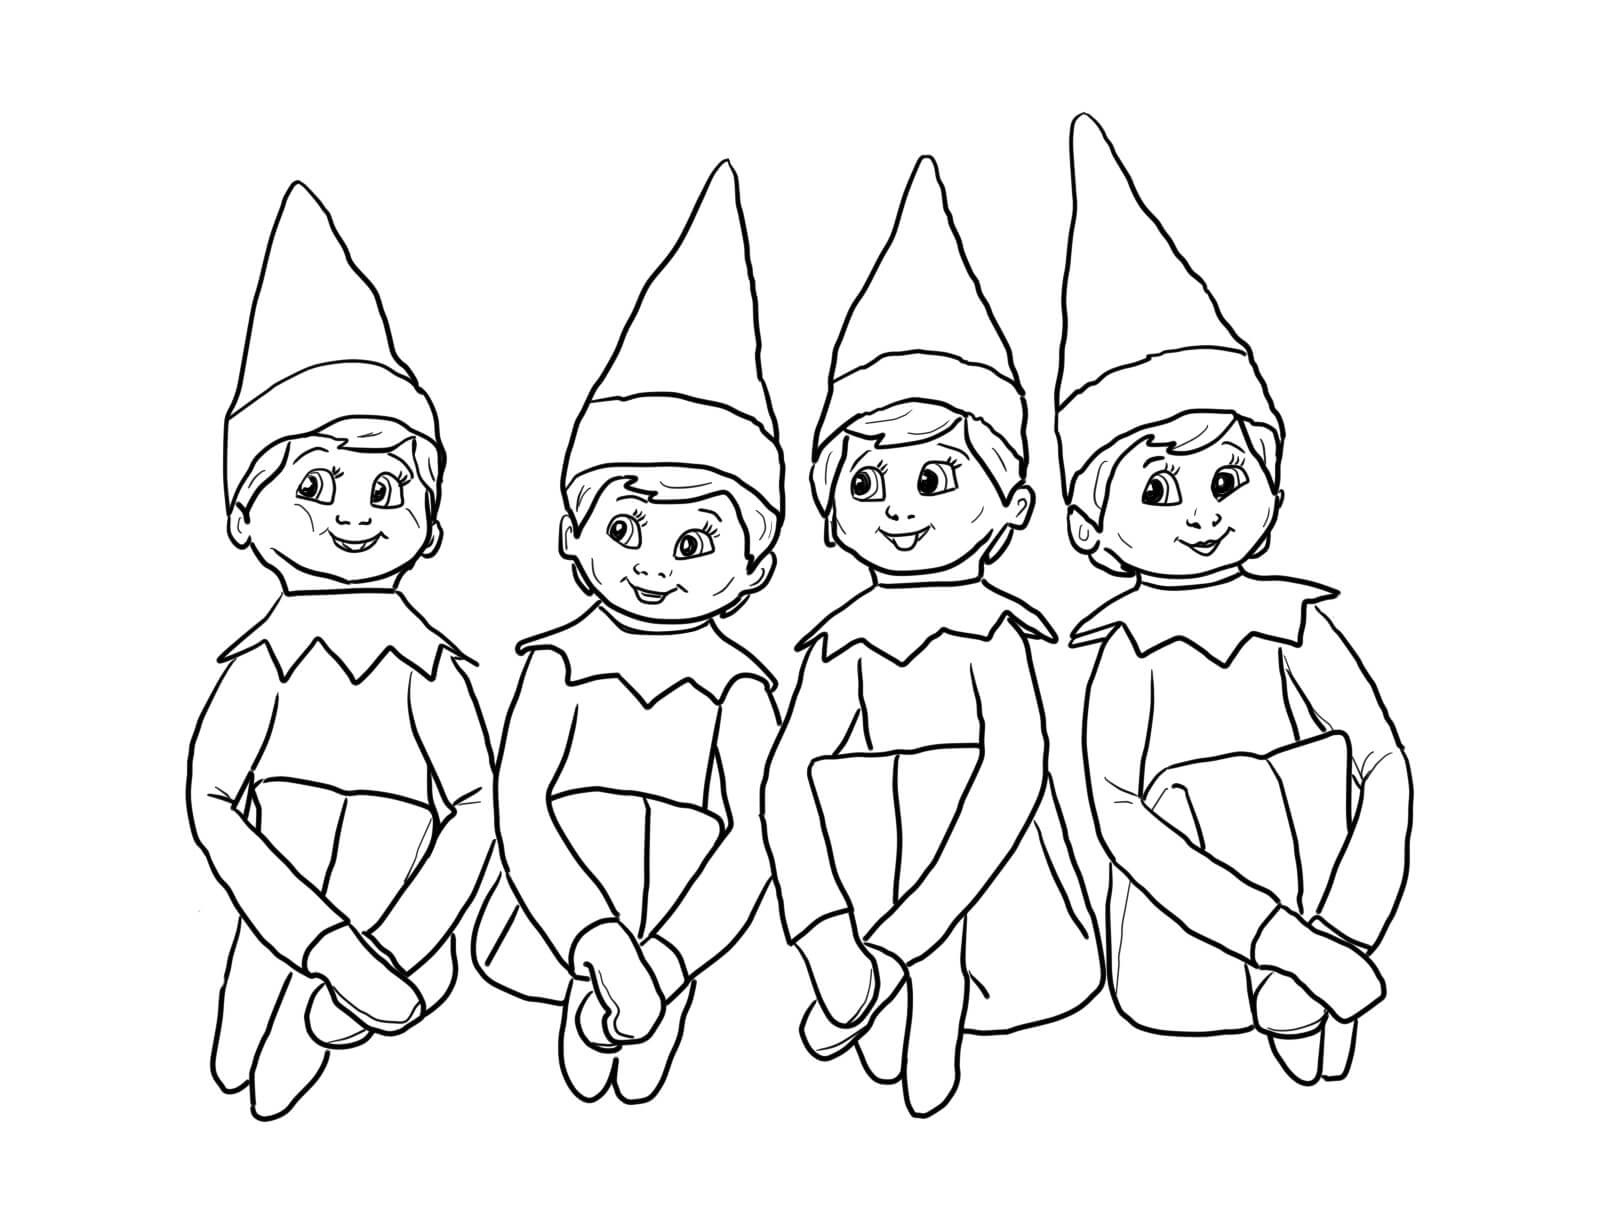 elf on the shelf coloring sheets bestfriend